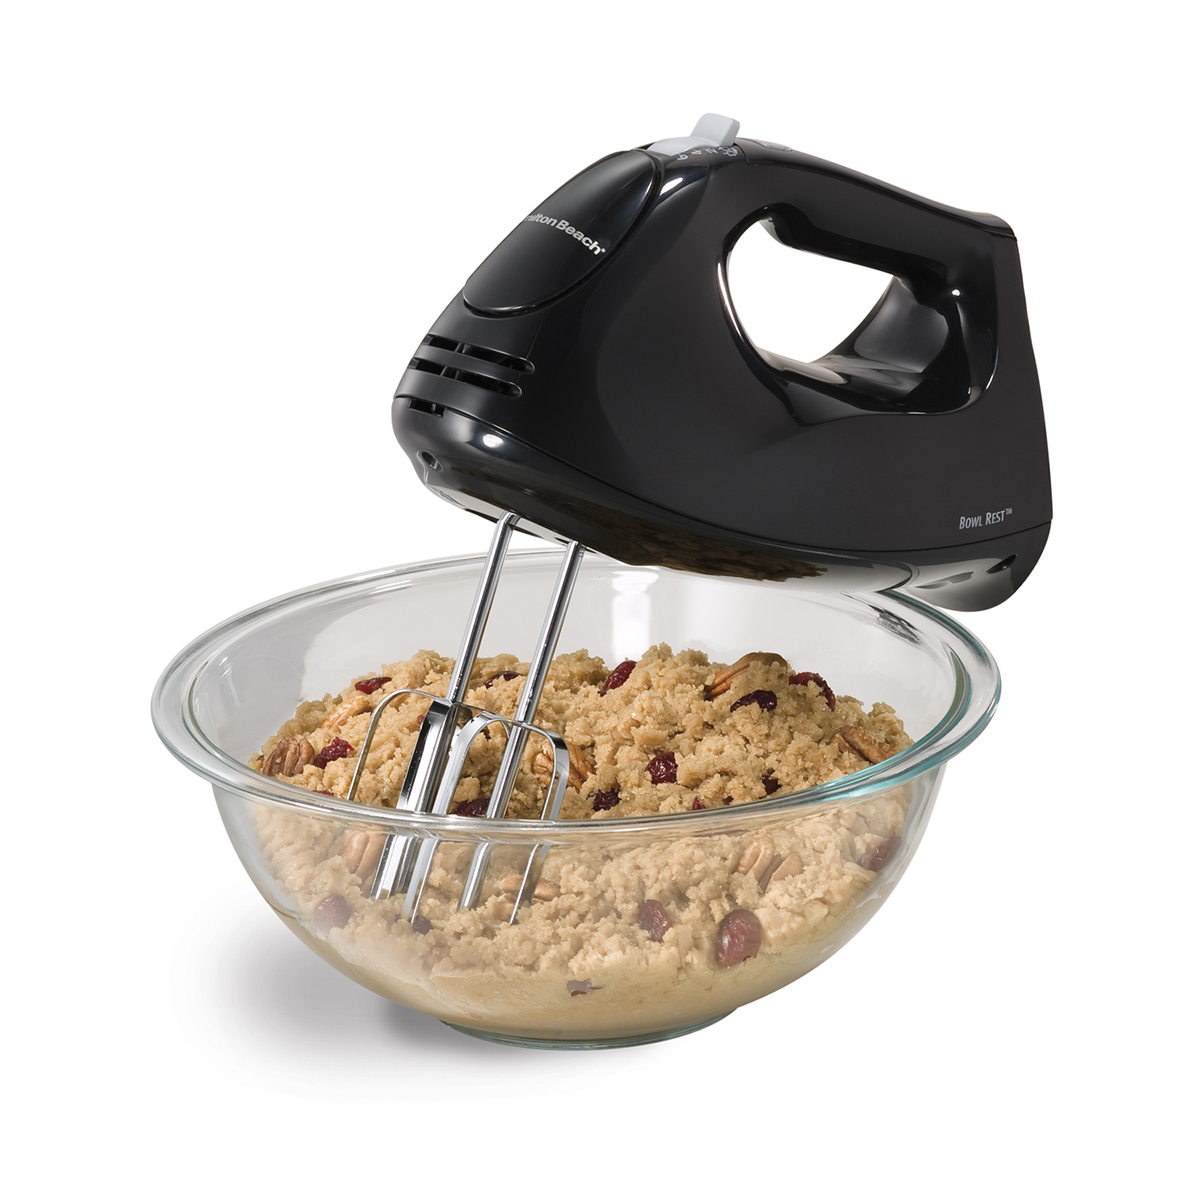 Hand Mixer with Snap-On Case - black (62630)